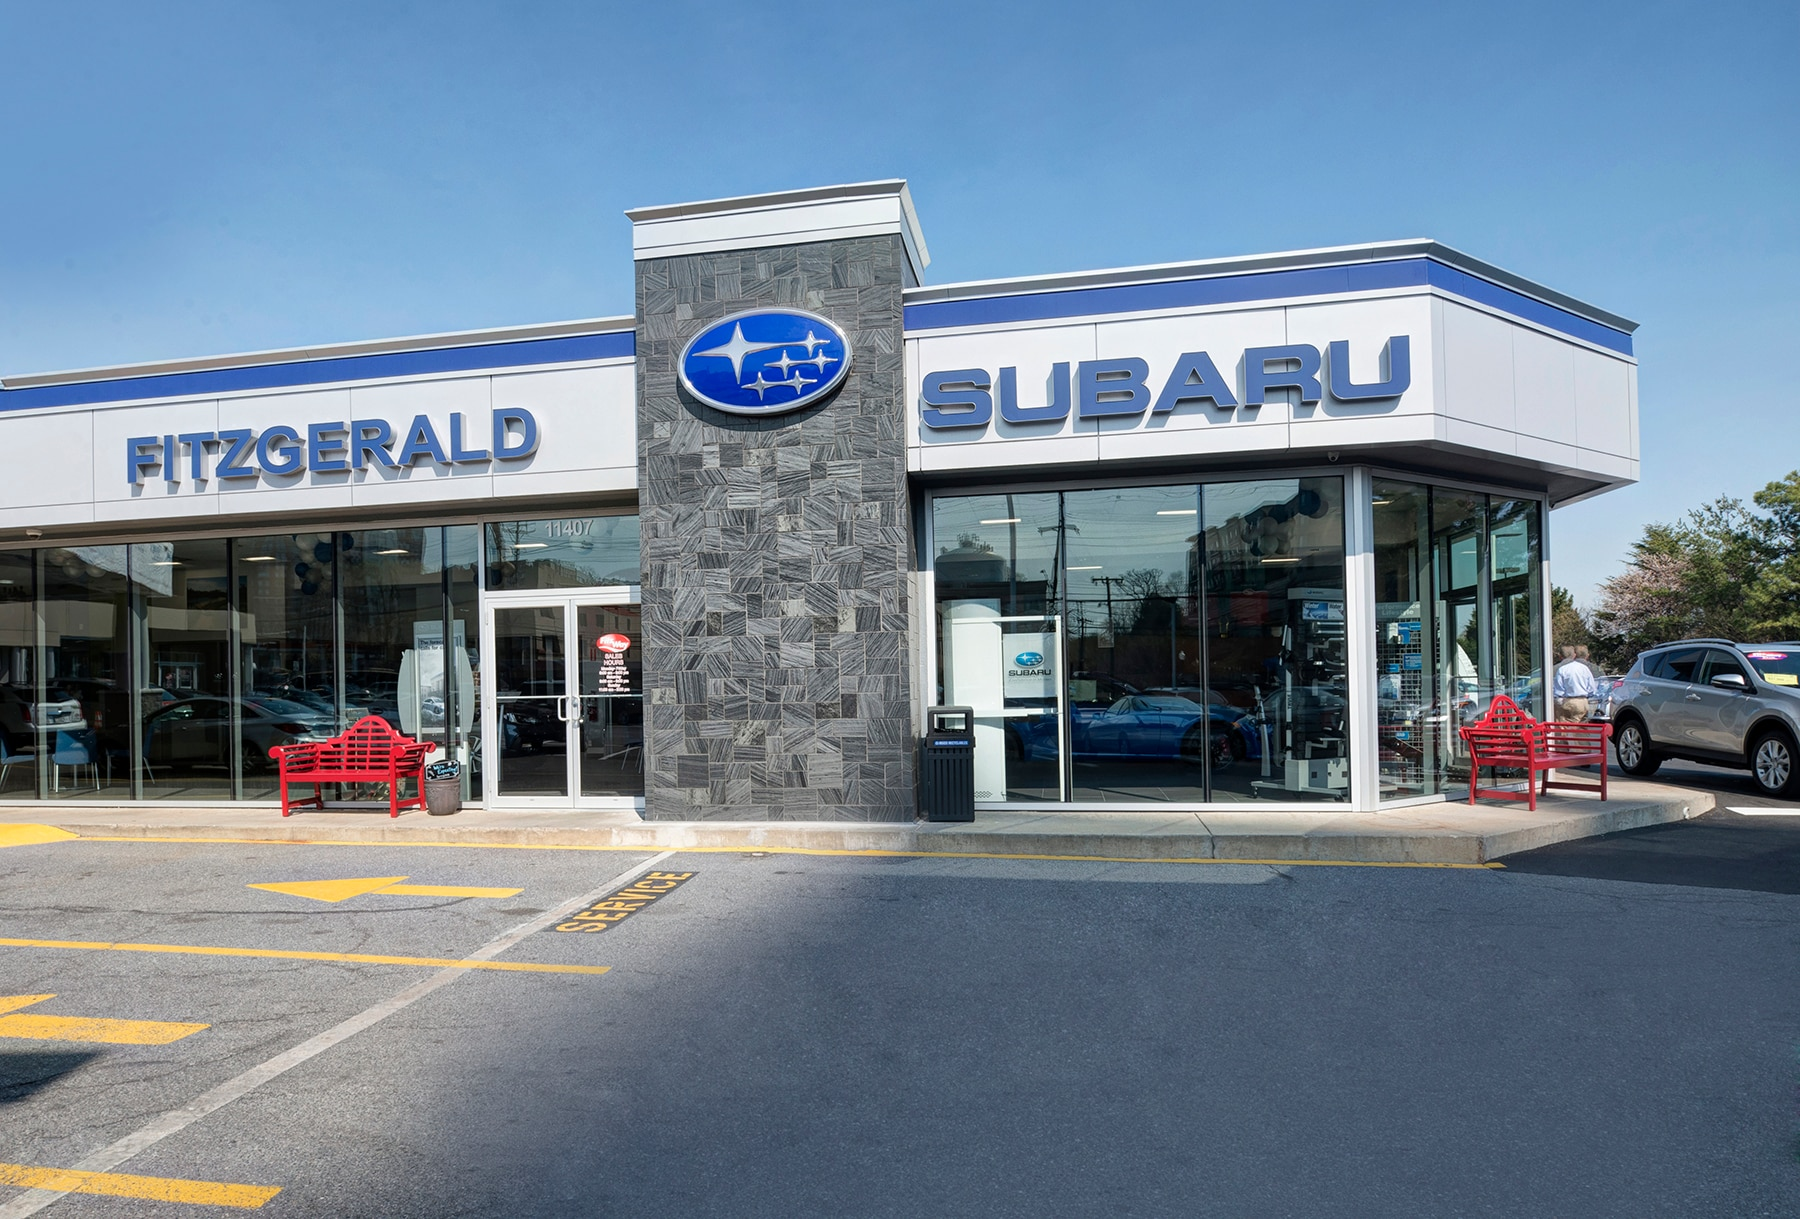 Subaru ext rockville1.jpg